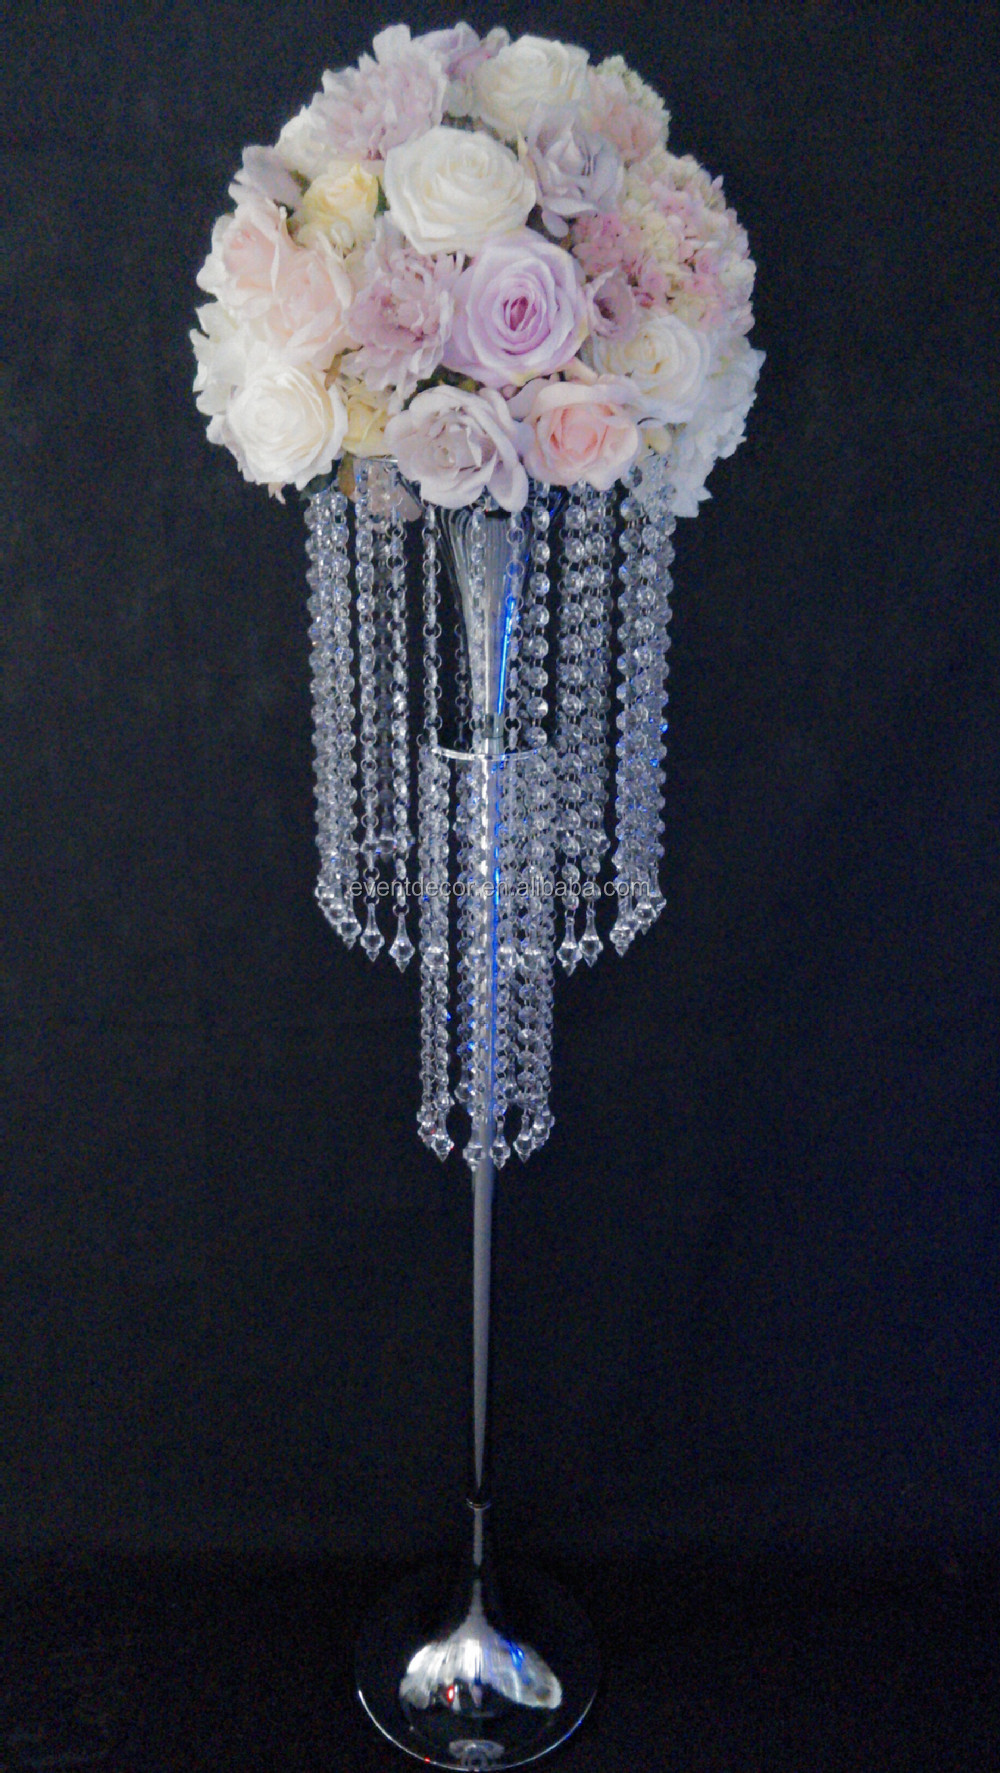 Cheap aisle stands weddings crystal chandelier flower